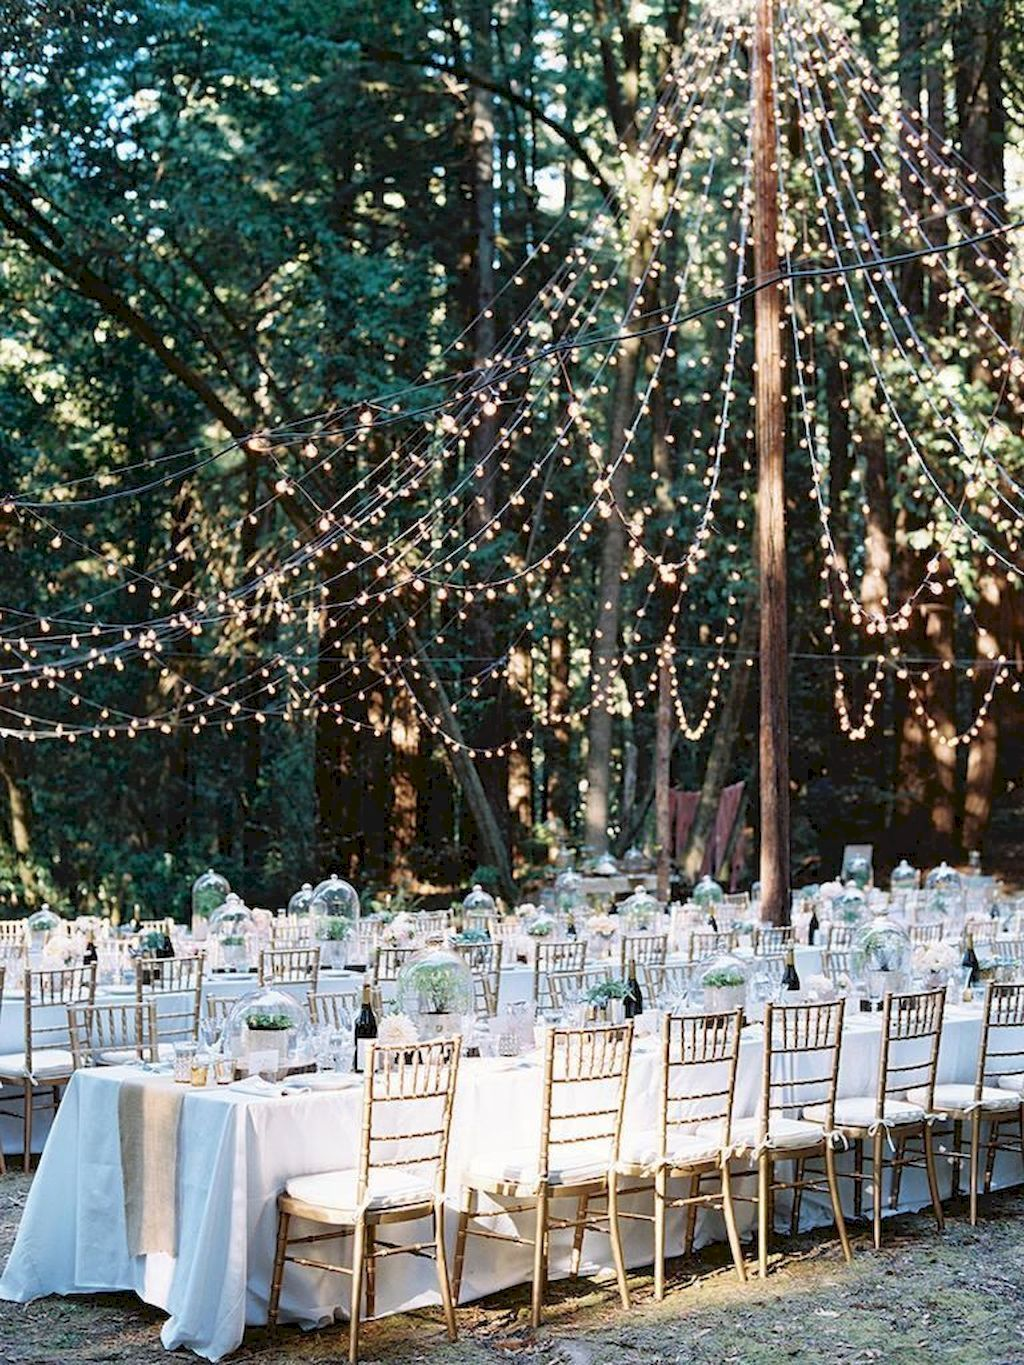 Wedding lawn decoration ideas  How to Decorate a Wedding Outdoor Decor Ideas on a Budget Outdoor